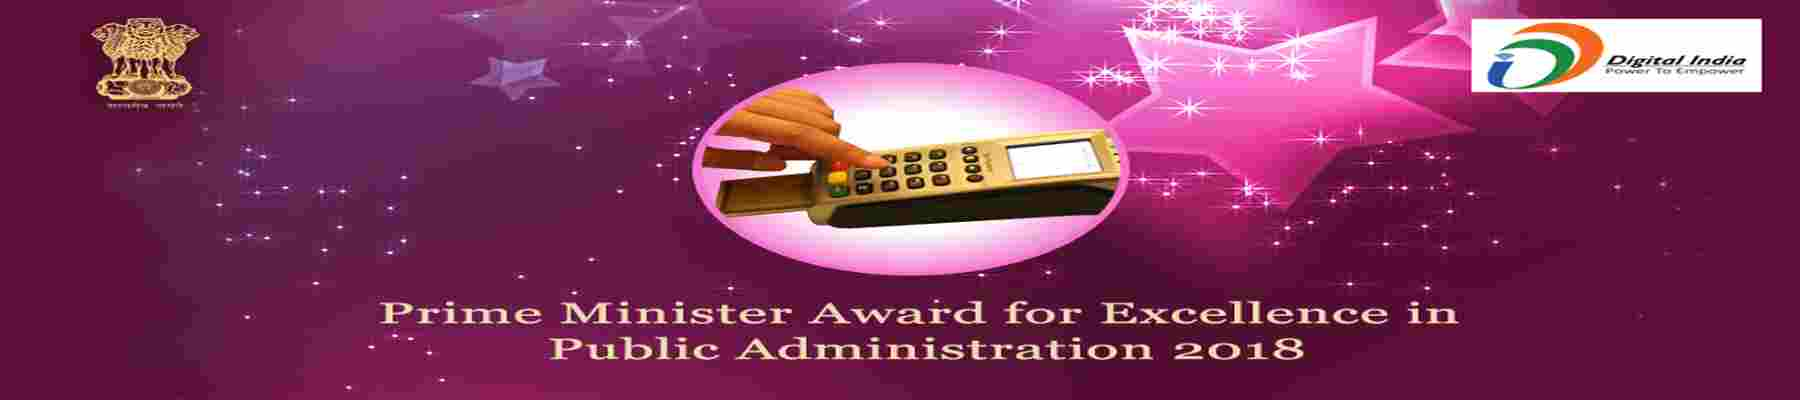 Prime Minister Award for Excellence in Public Administration 2018